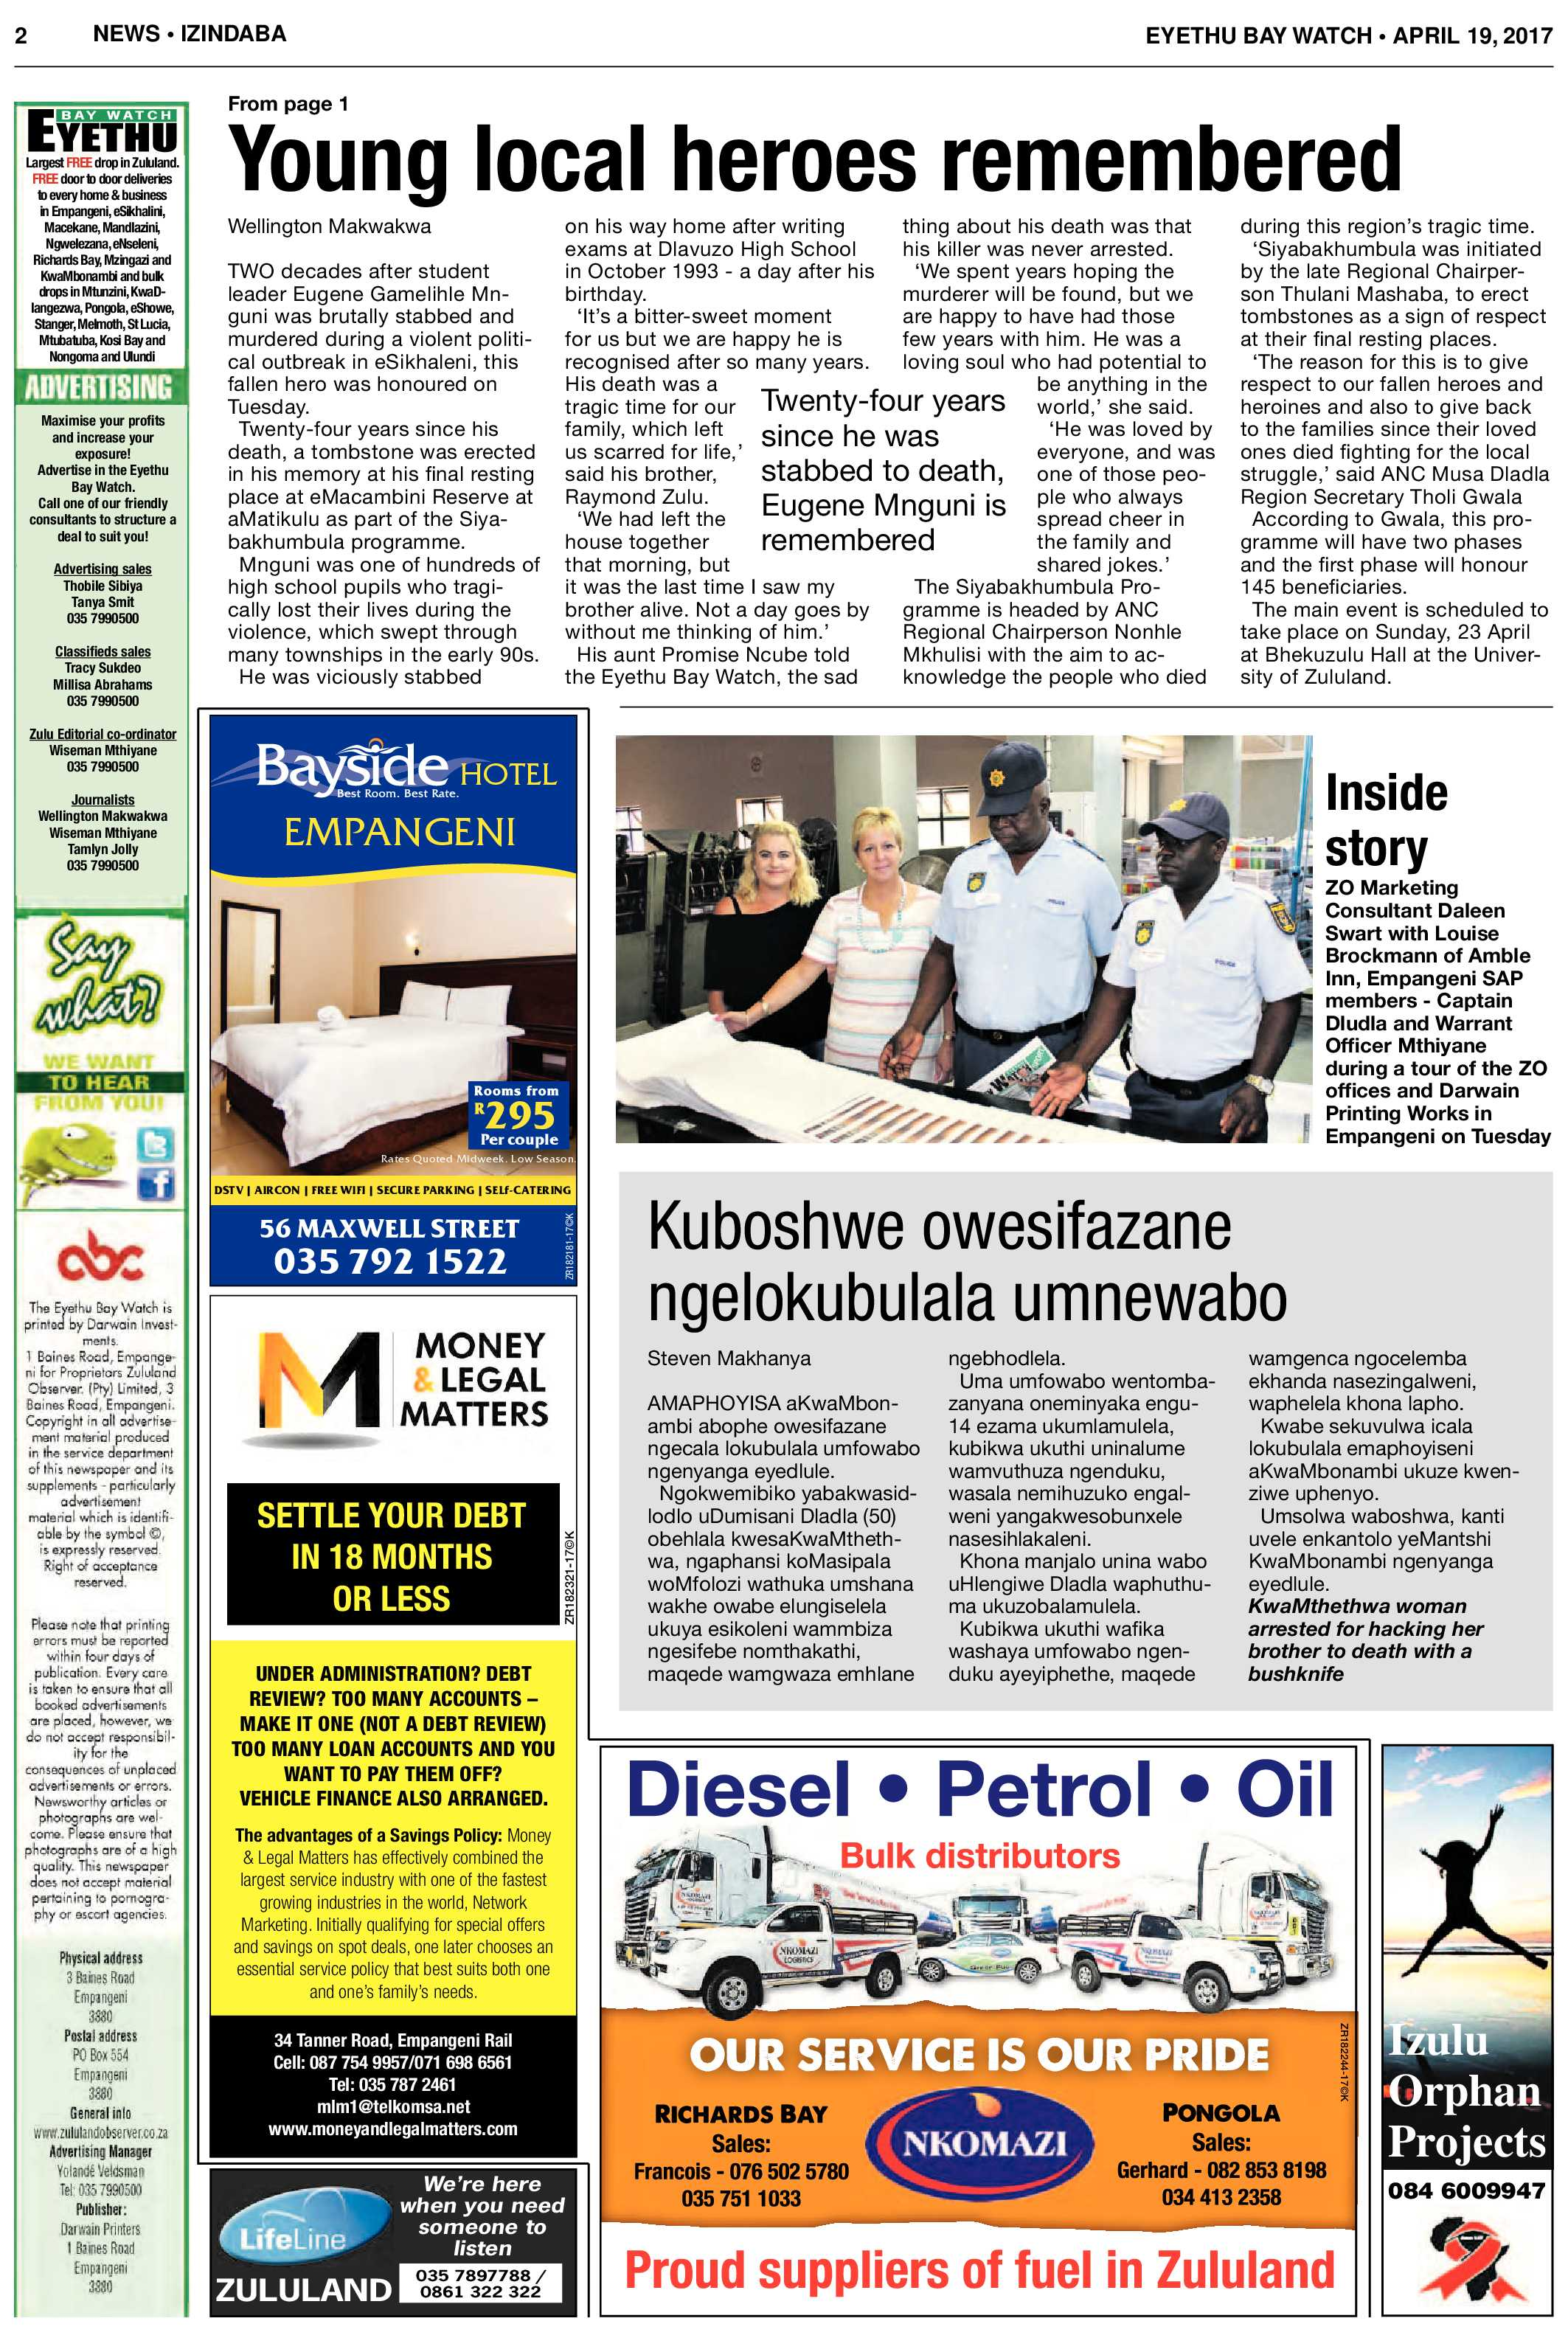 eyethu-baywatch-19-april-epapers-page-2